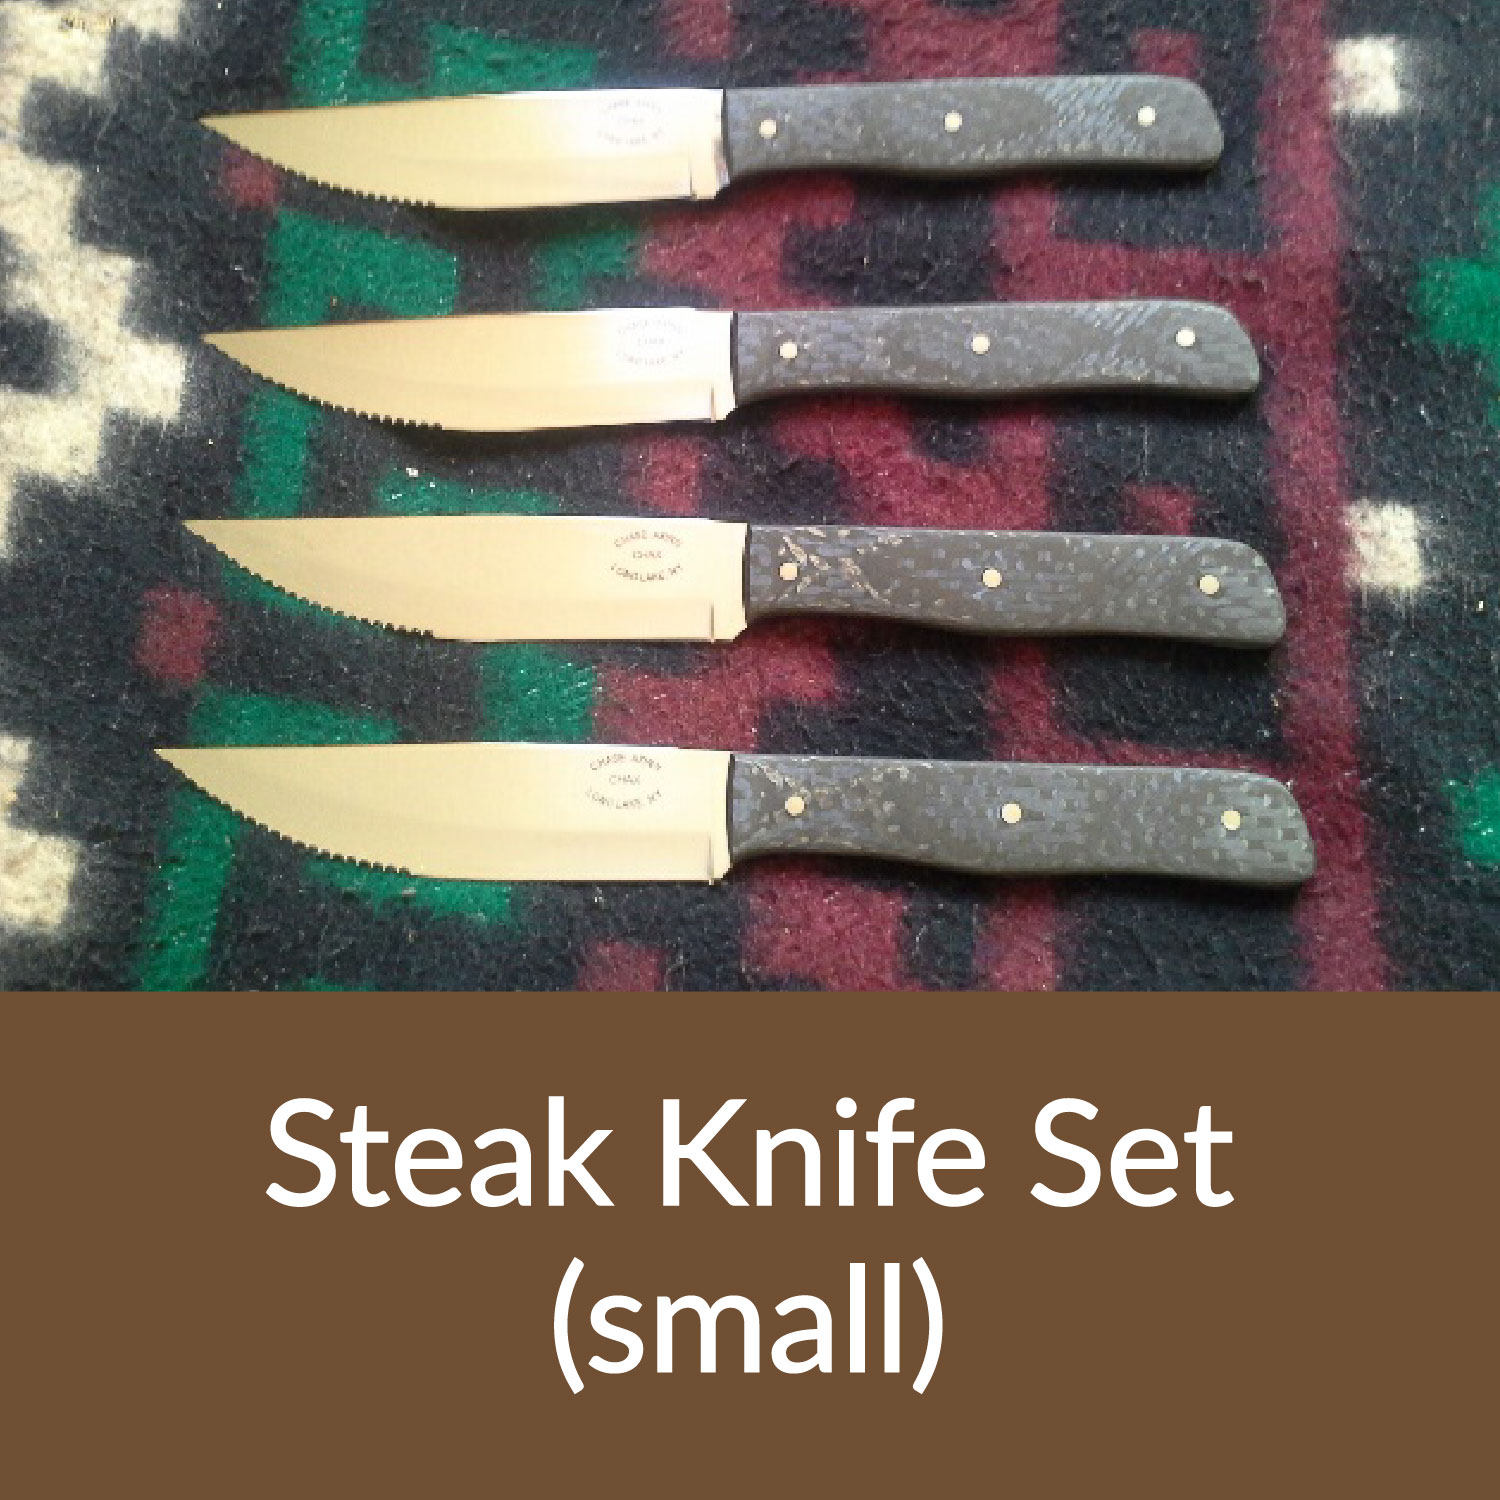 Small Steak Knife Set